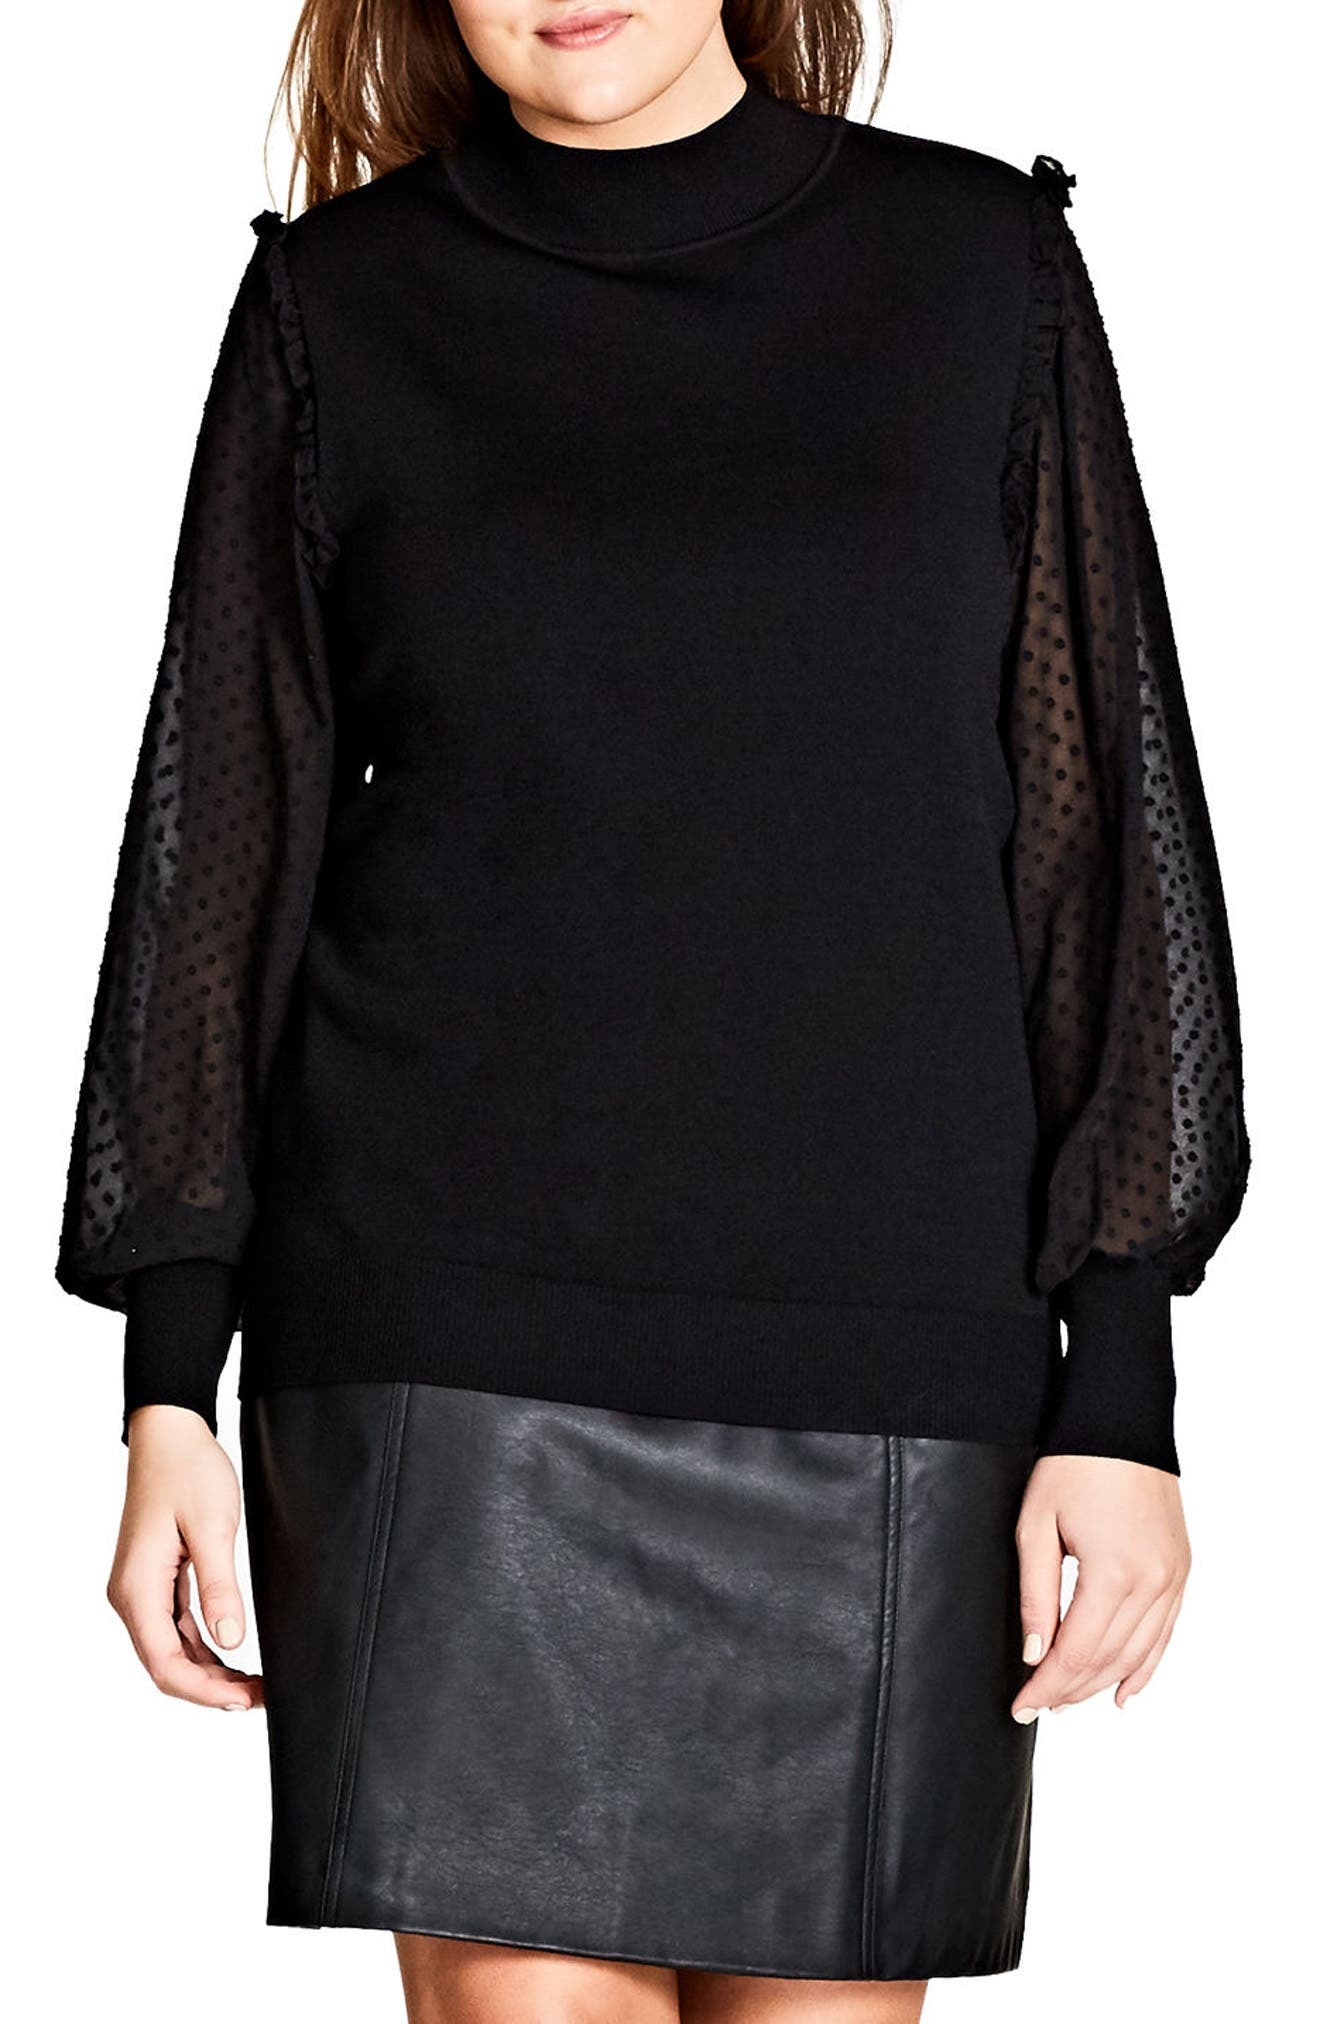 Main Image - City Chic Swiss Dot Sleeve Sweater (Plus Size)